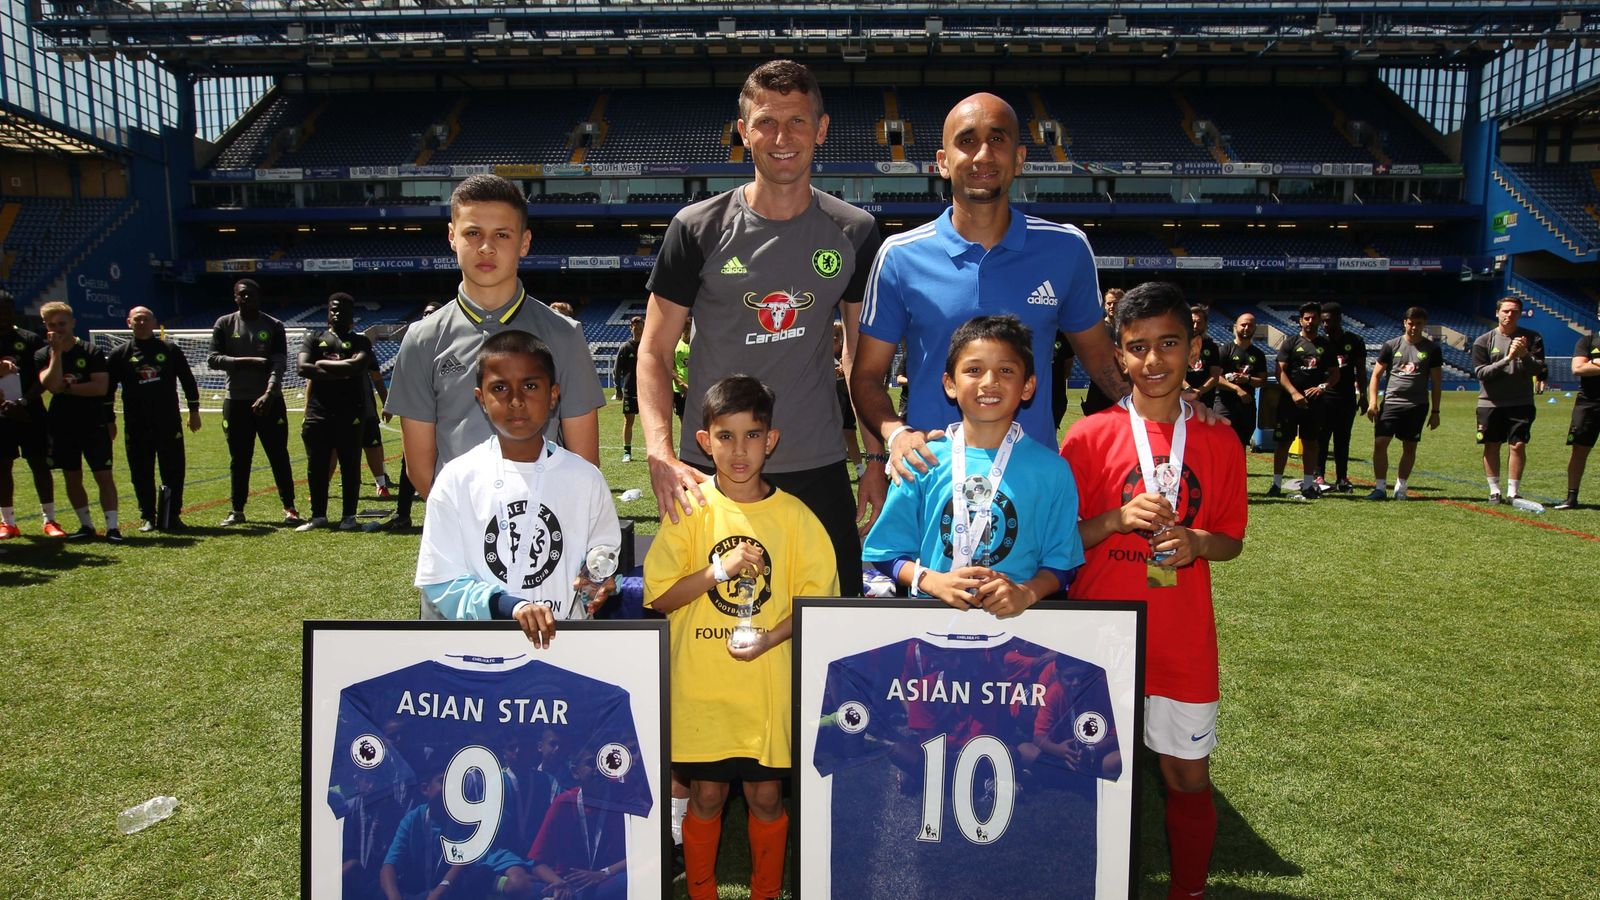 Chelsea Legend Tore Andre Flo Hopes South Asian Player Makes Premier League Breakthrough Football News Sky Sports